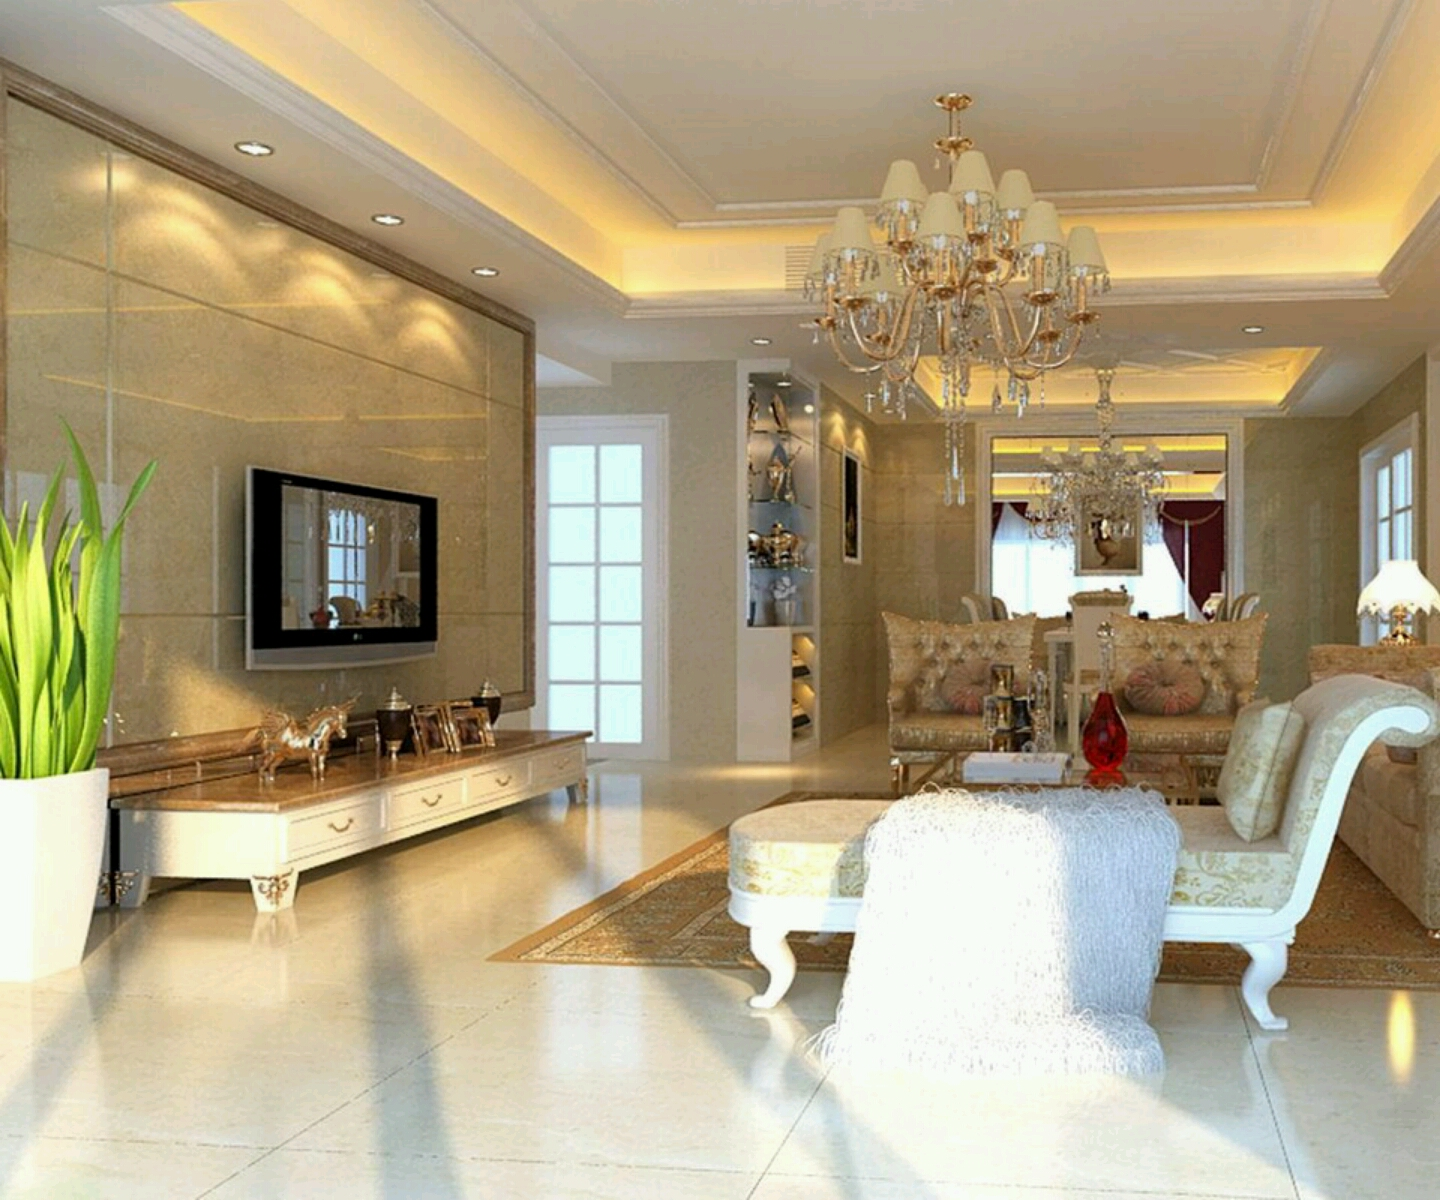 Home Interior Decoration Photos